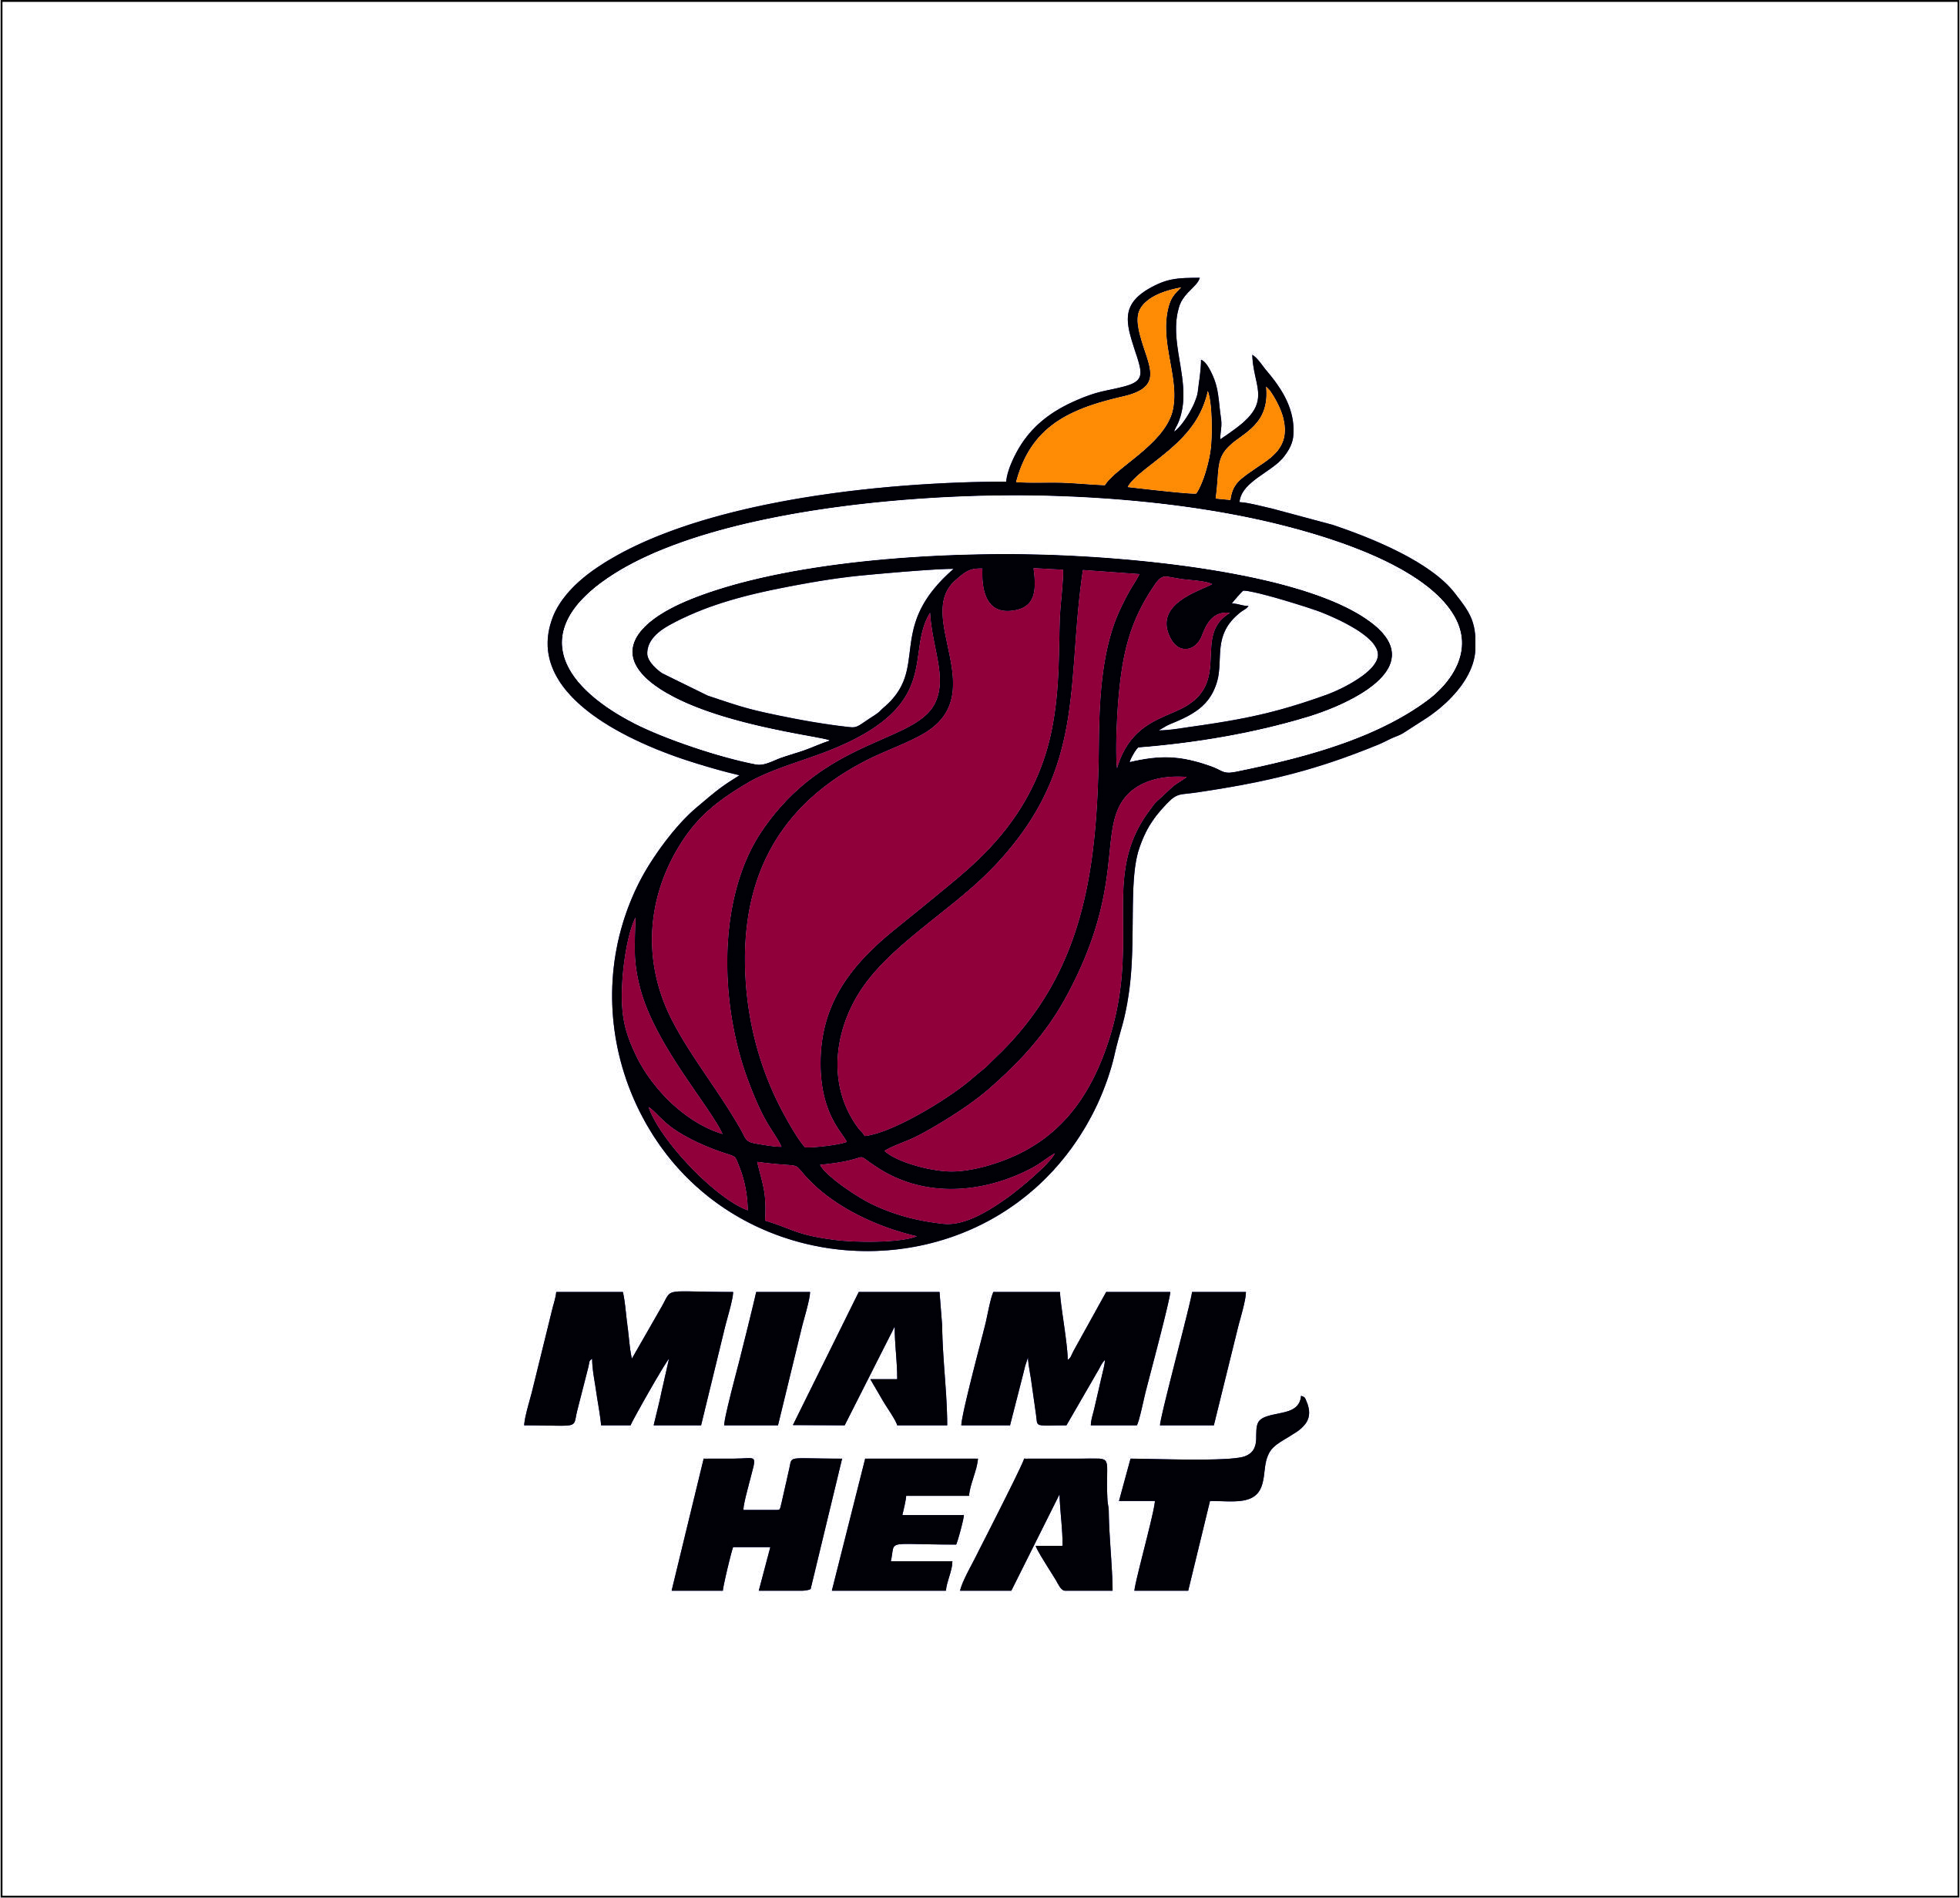 Miami Heat Logo Svgprinted